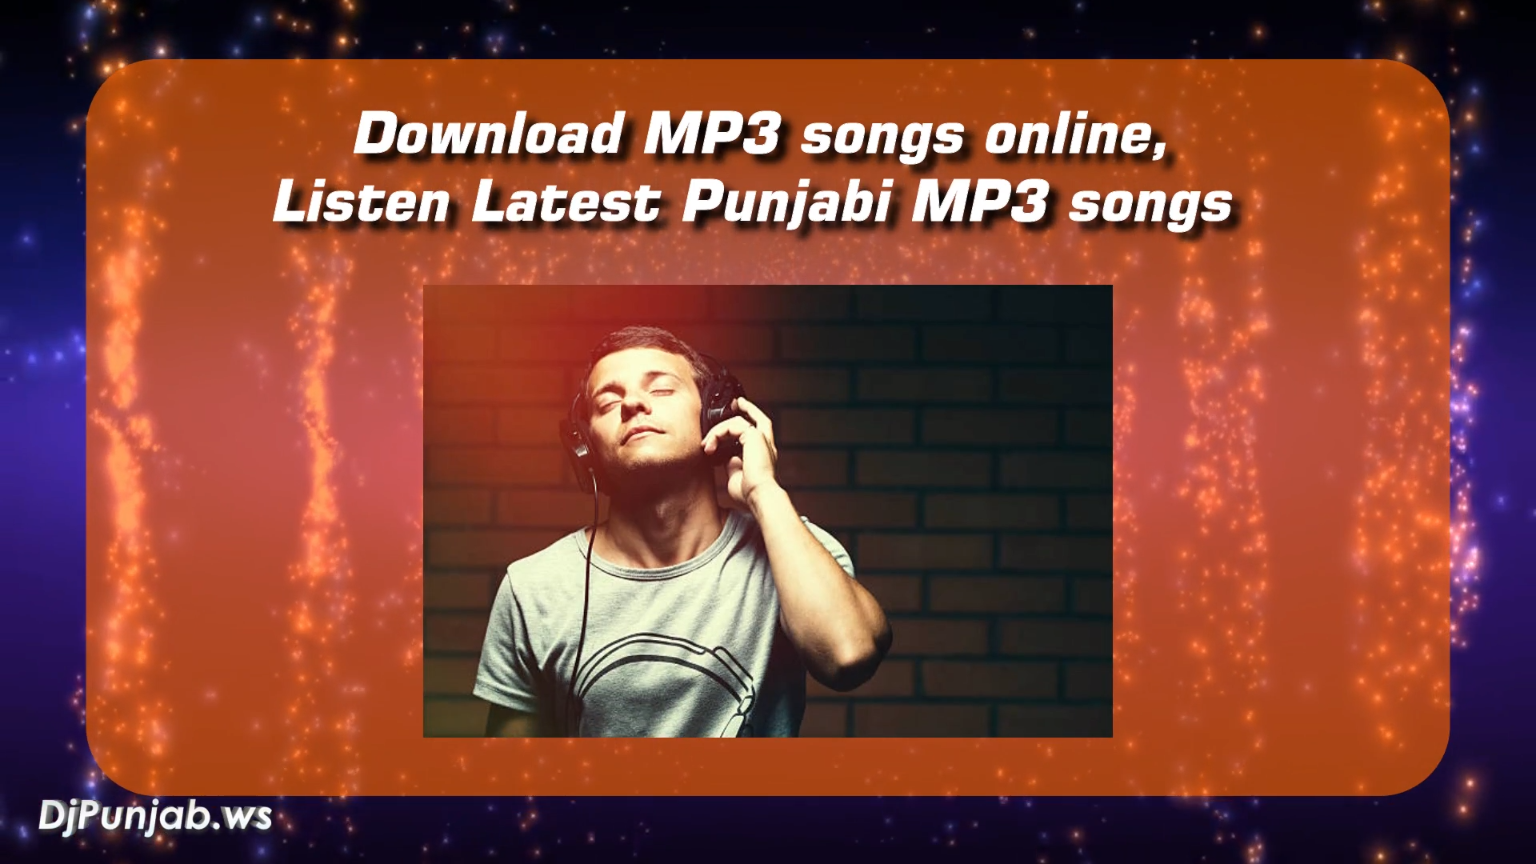 New photo song djpunjab top 20 videos